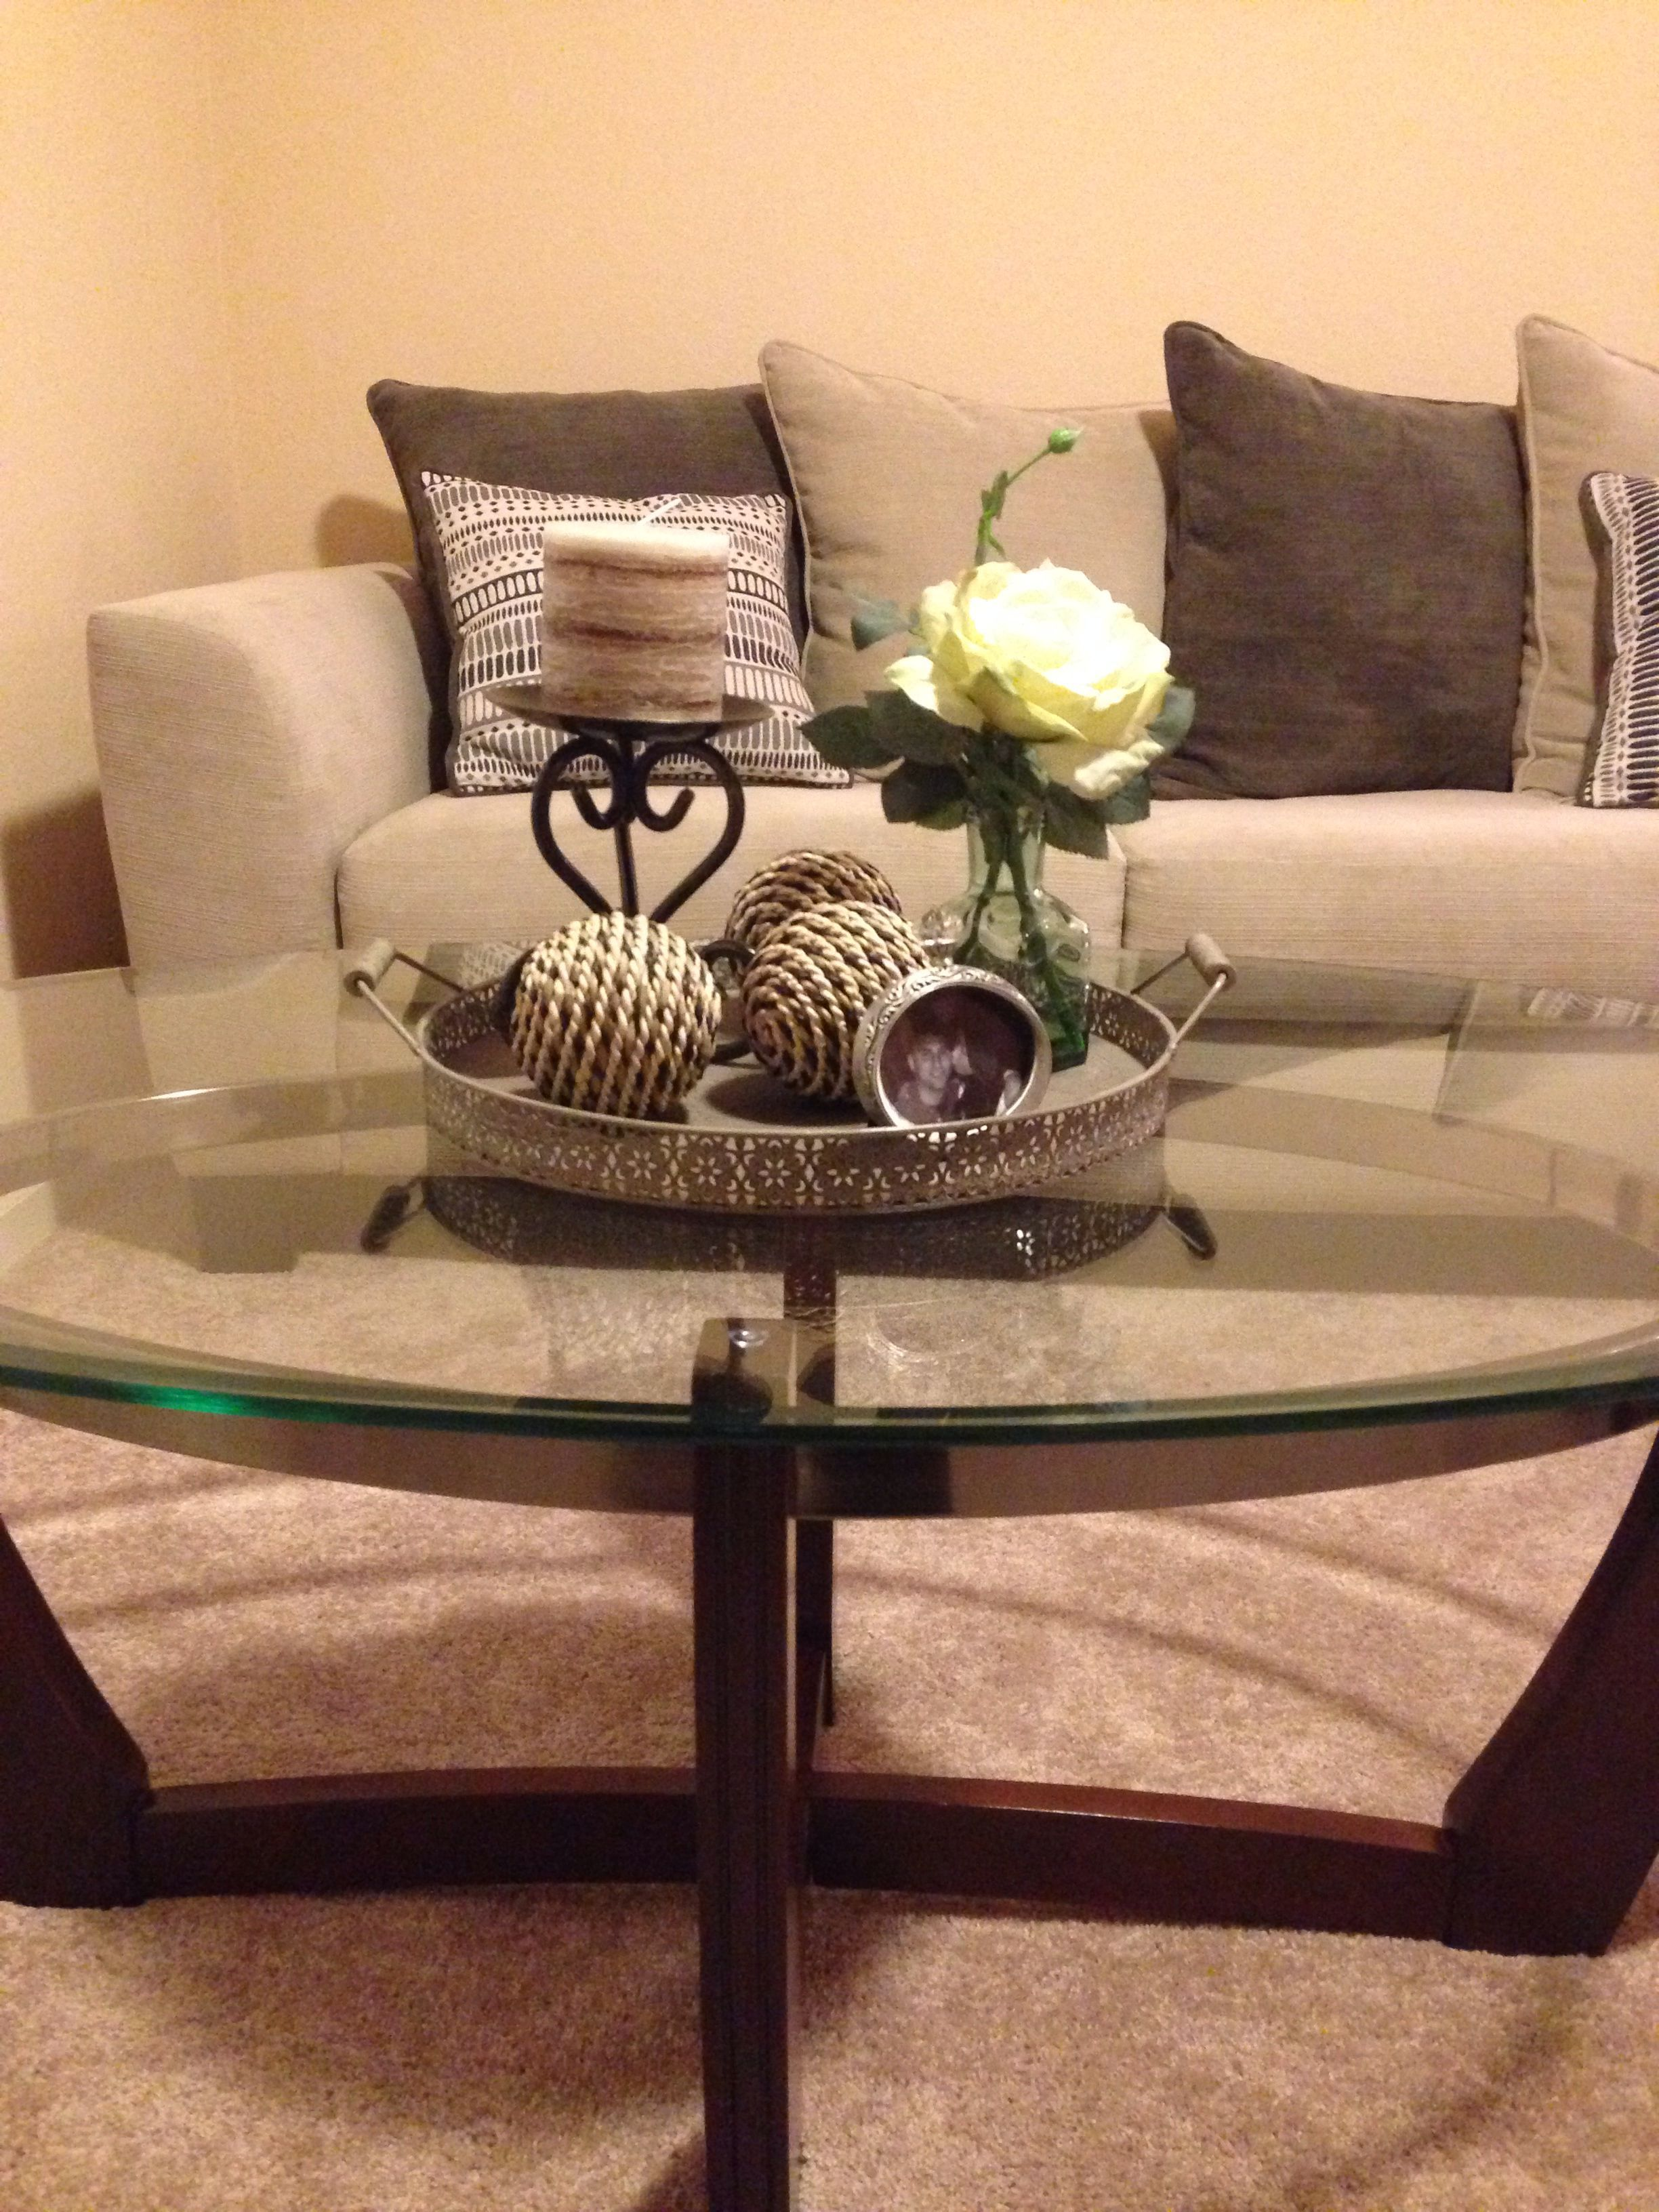 Center table decor (With images) | Decor, Center table ...